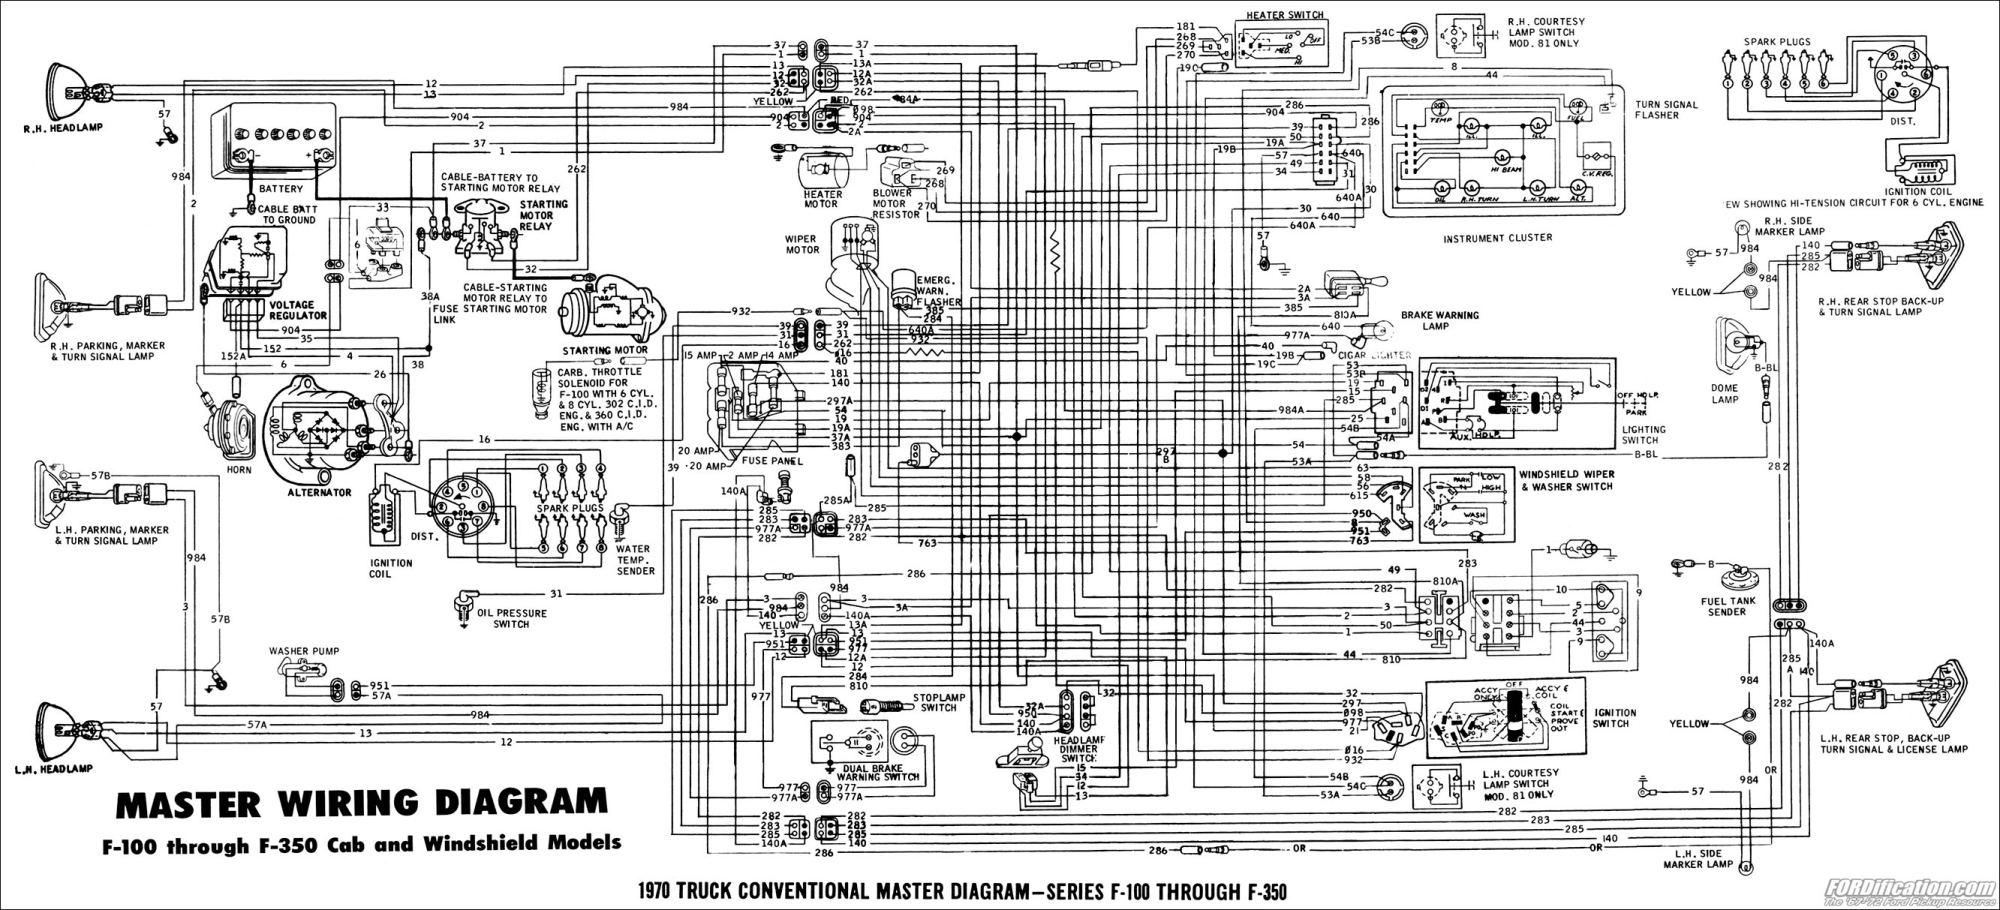 hight resolution of wiring diagram for 1989 ford f250 wiring diagram hub 78 ford truck wiring diagram 1989 ford f250 wiring diagram